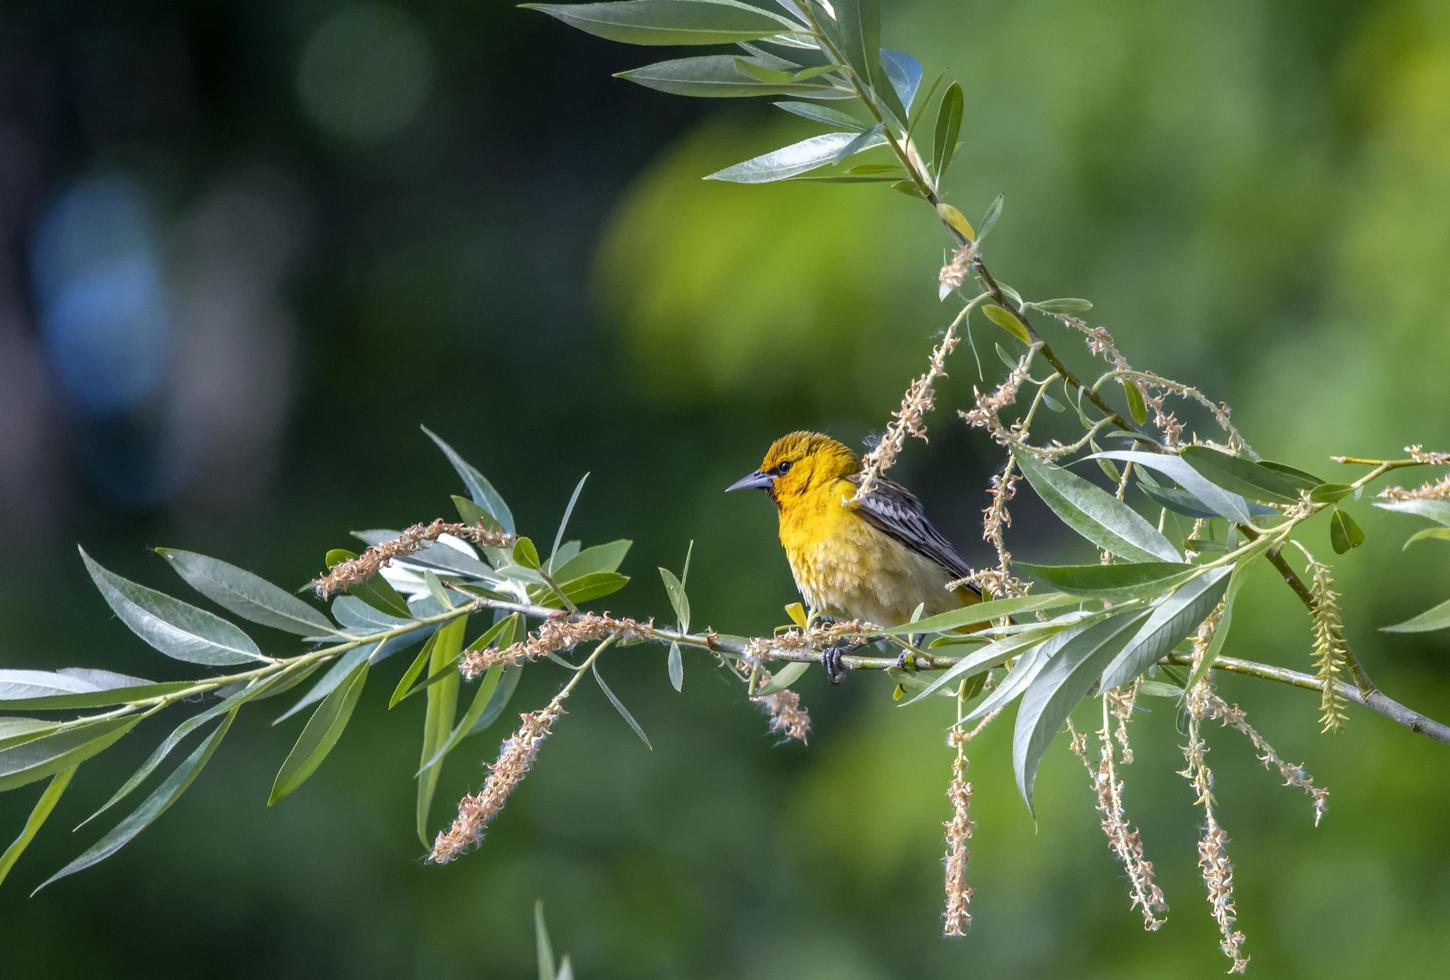 Bird perched on branch photo